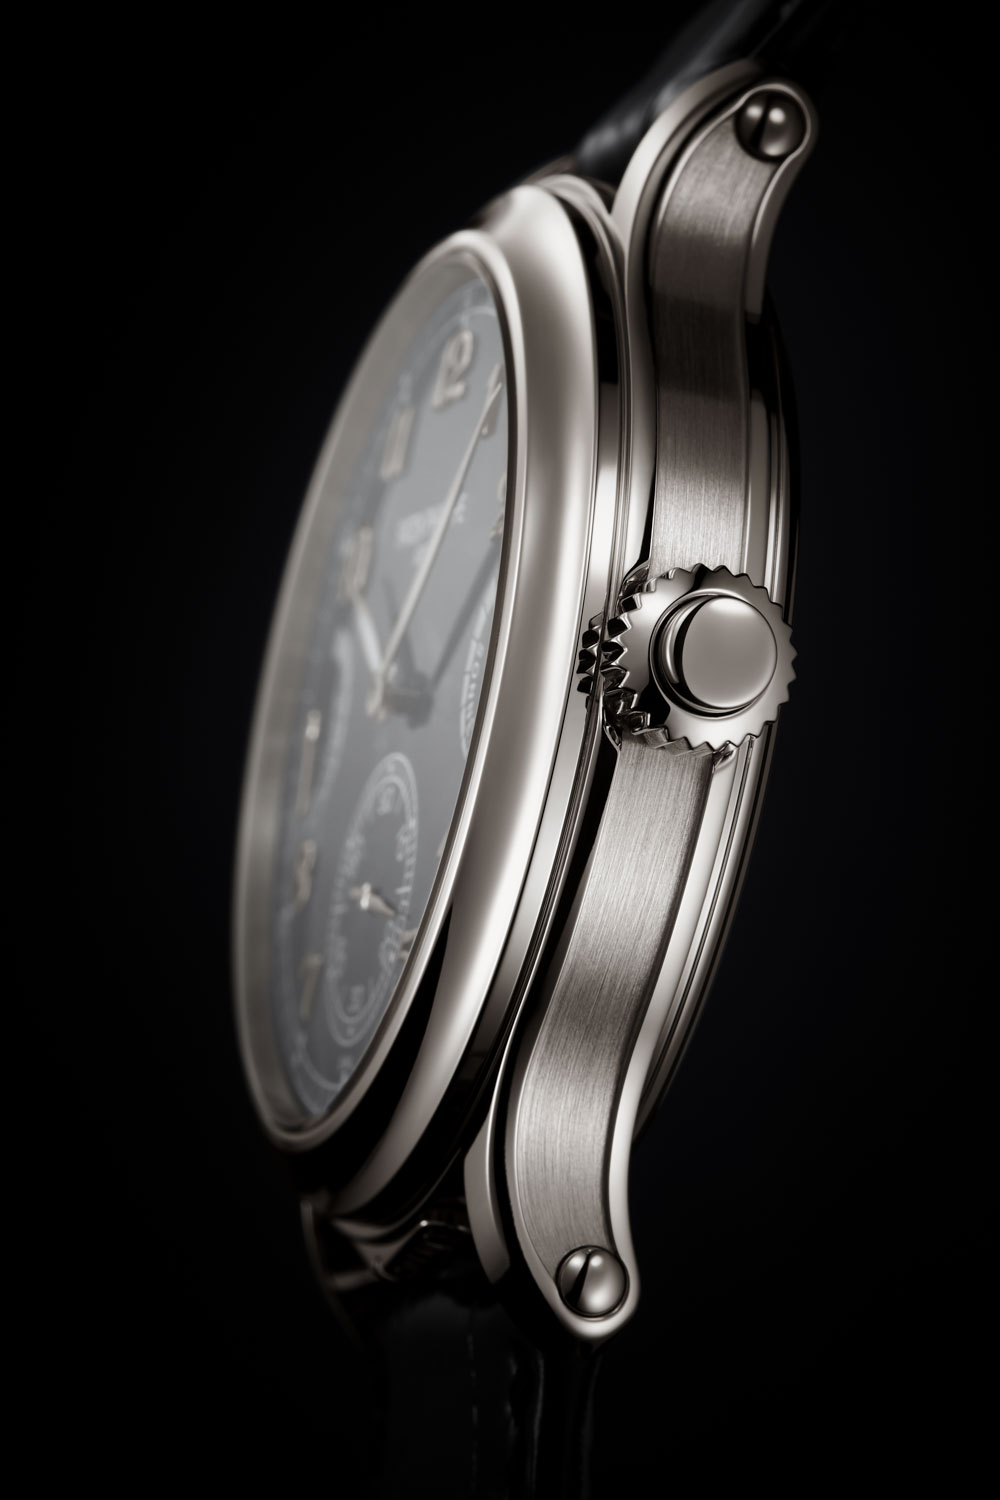 The 2020 Patek Philippe Ref. 6301P Grande Sonnerie's absolute zen-like focus on being the best grande sonnerie in the game, is reflected in its pure, sober and wonderfully elegant design